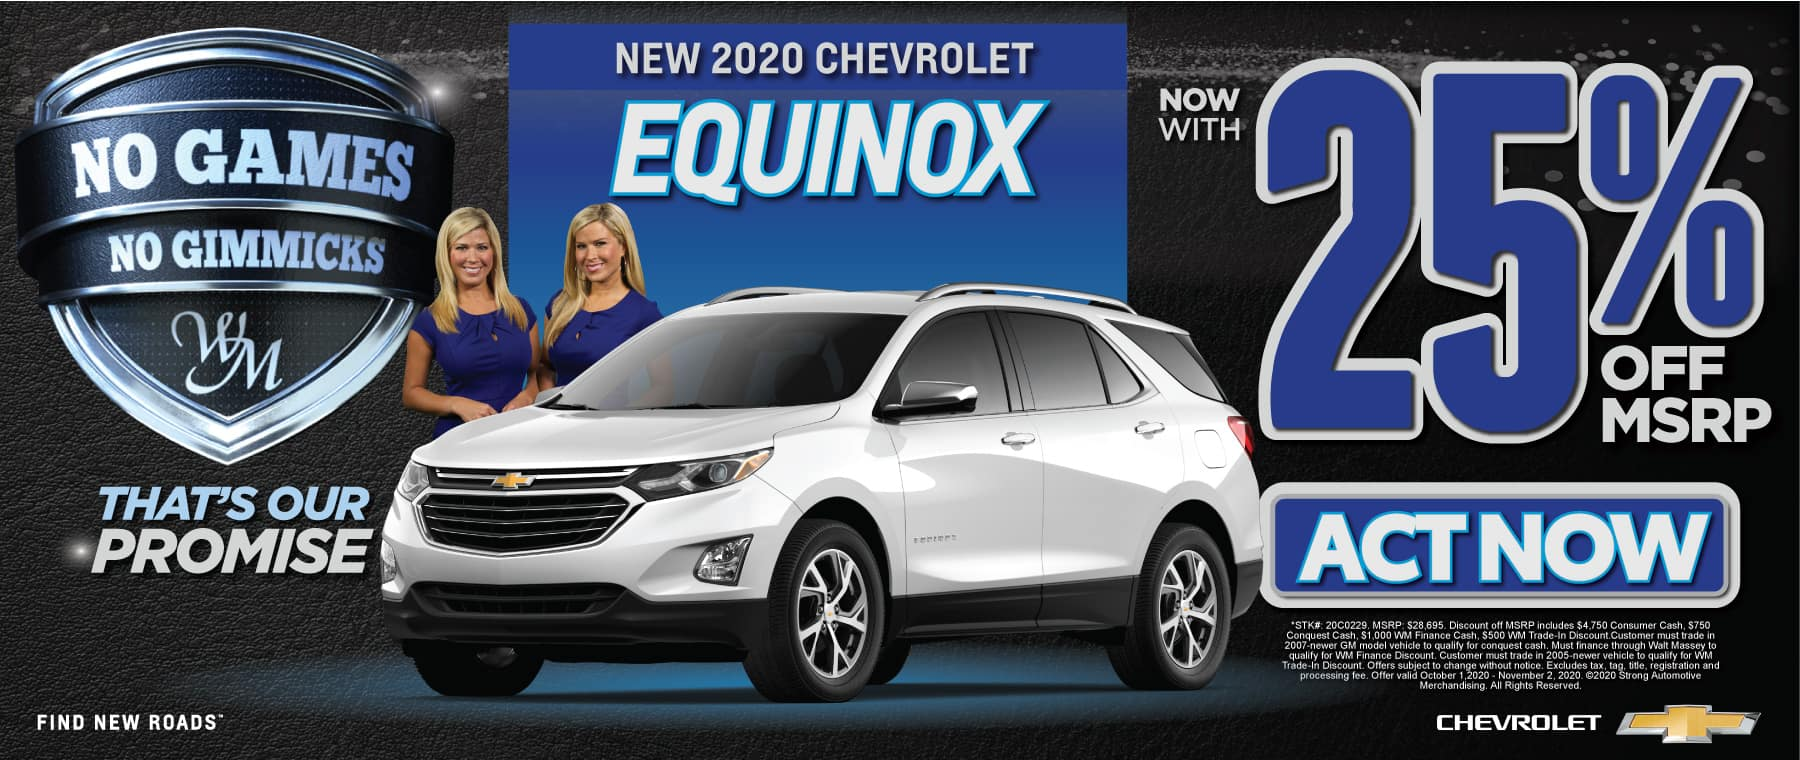 New 2020 Chevrolet Equinox | 25% off MSRP | Act Now